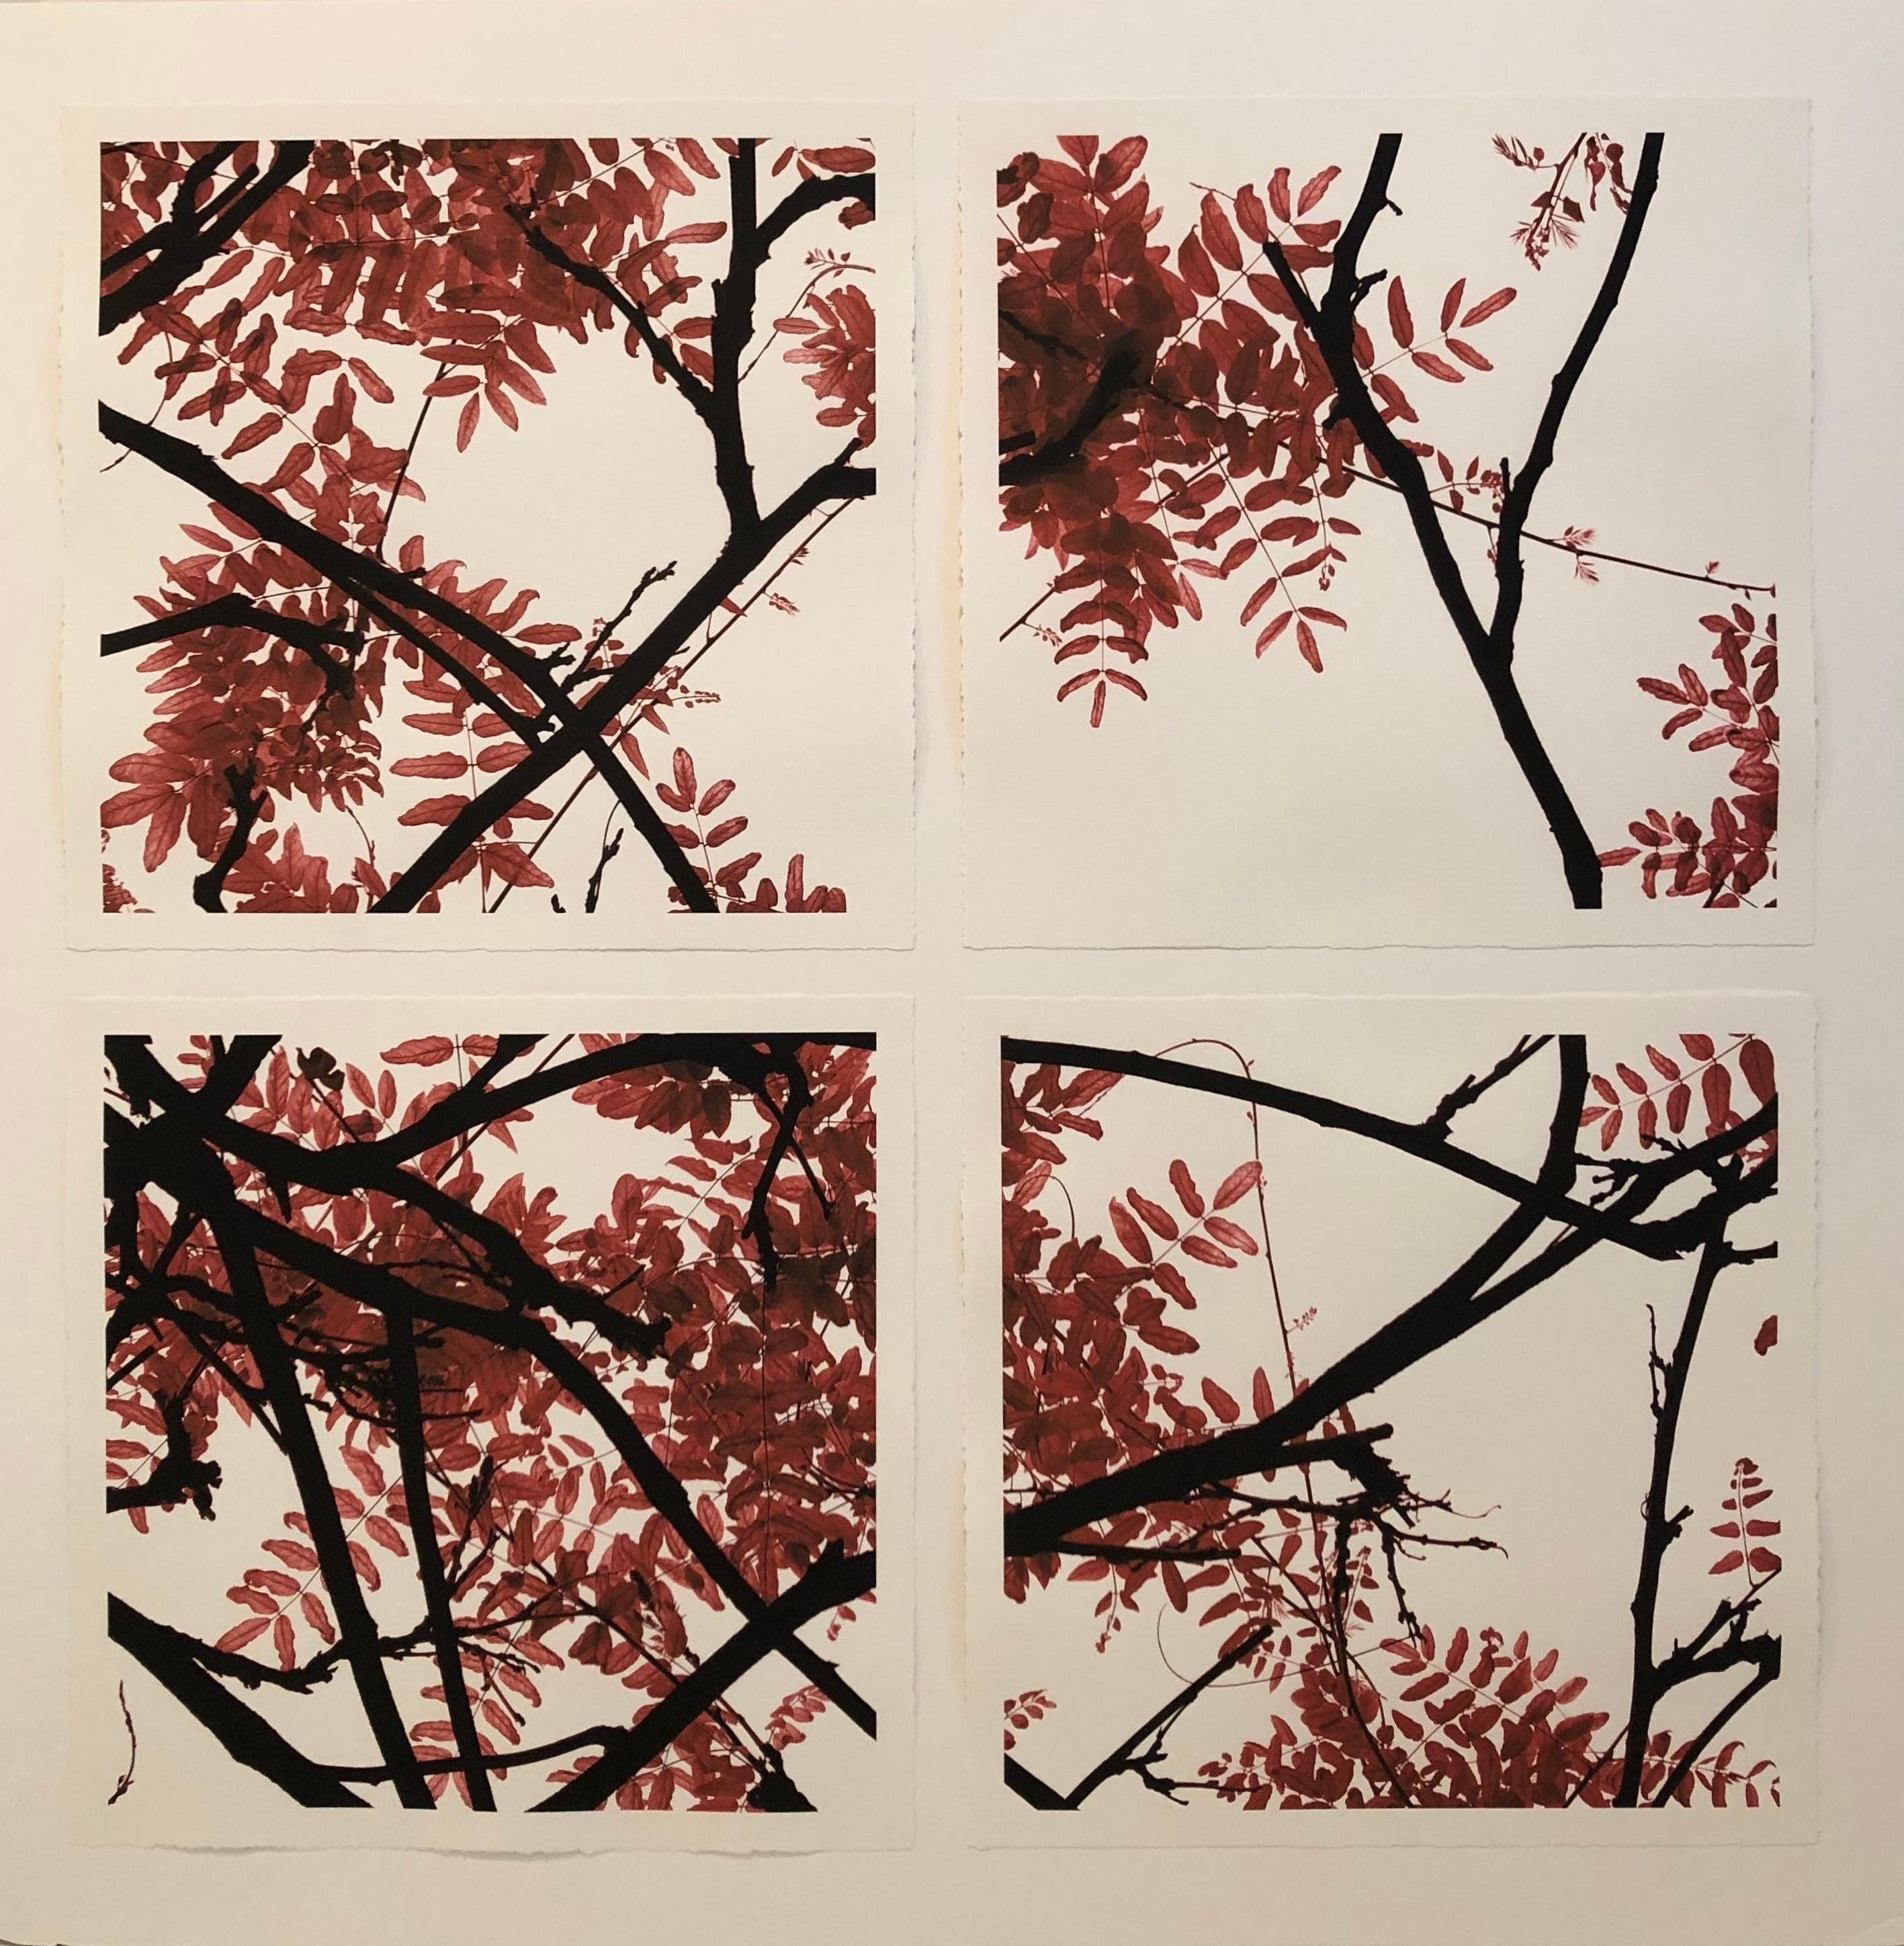 """""""The Vine Series - Fall"""" - Grid of 4 photographs tinted in red sienna"""